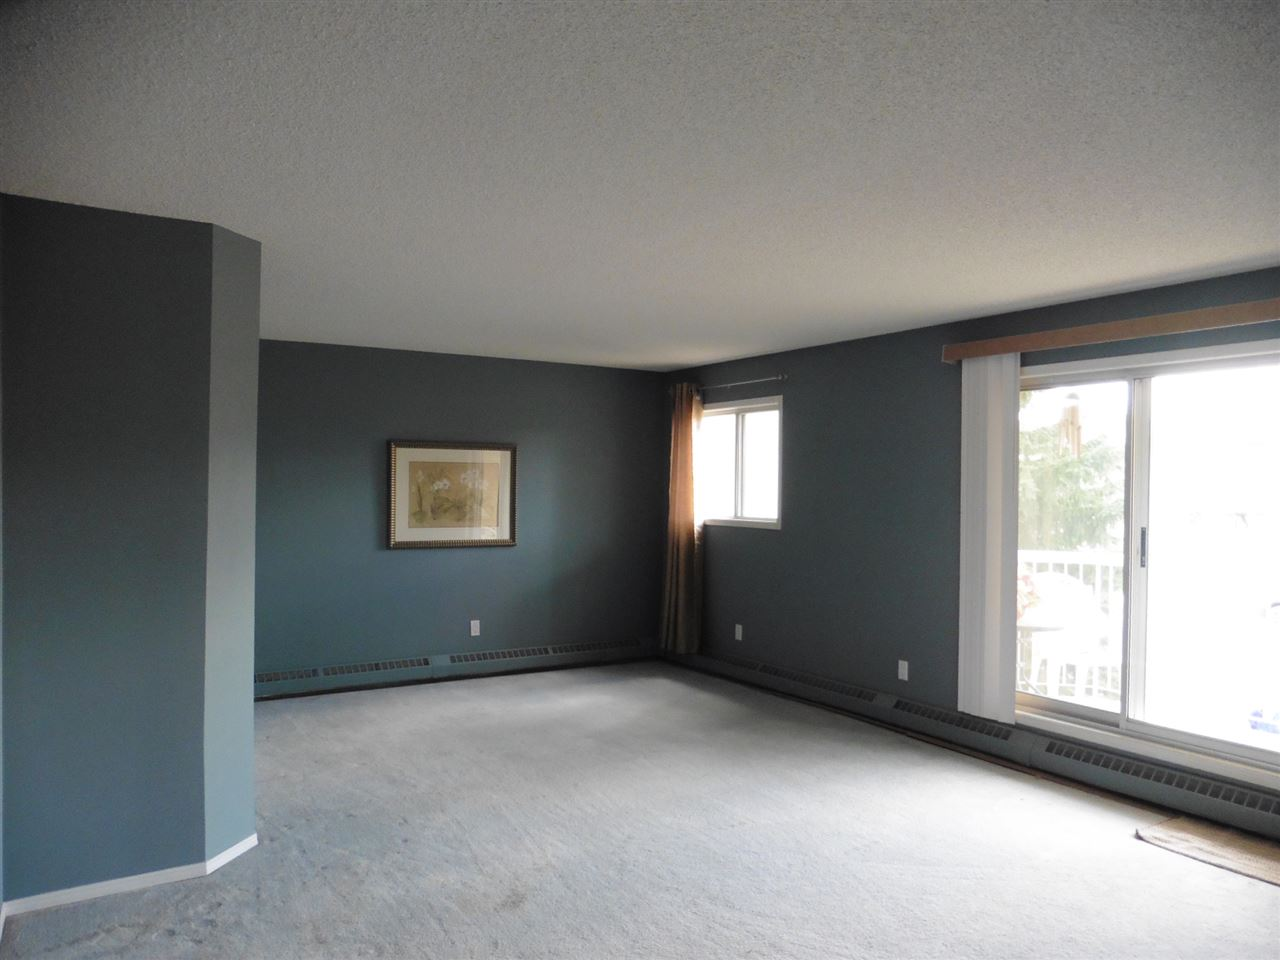 Spacious and bright living room area with patio doors opening to balcony.